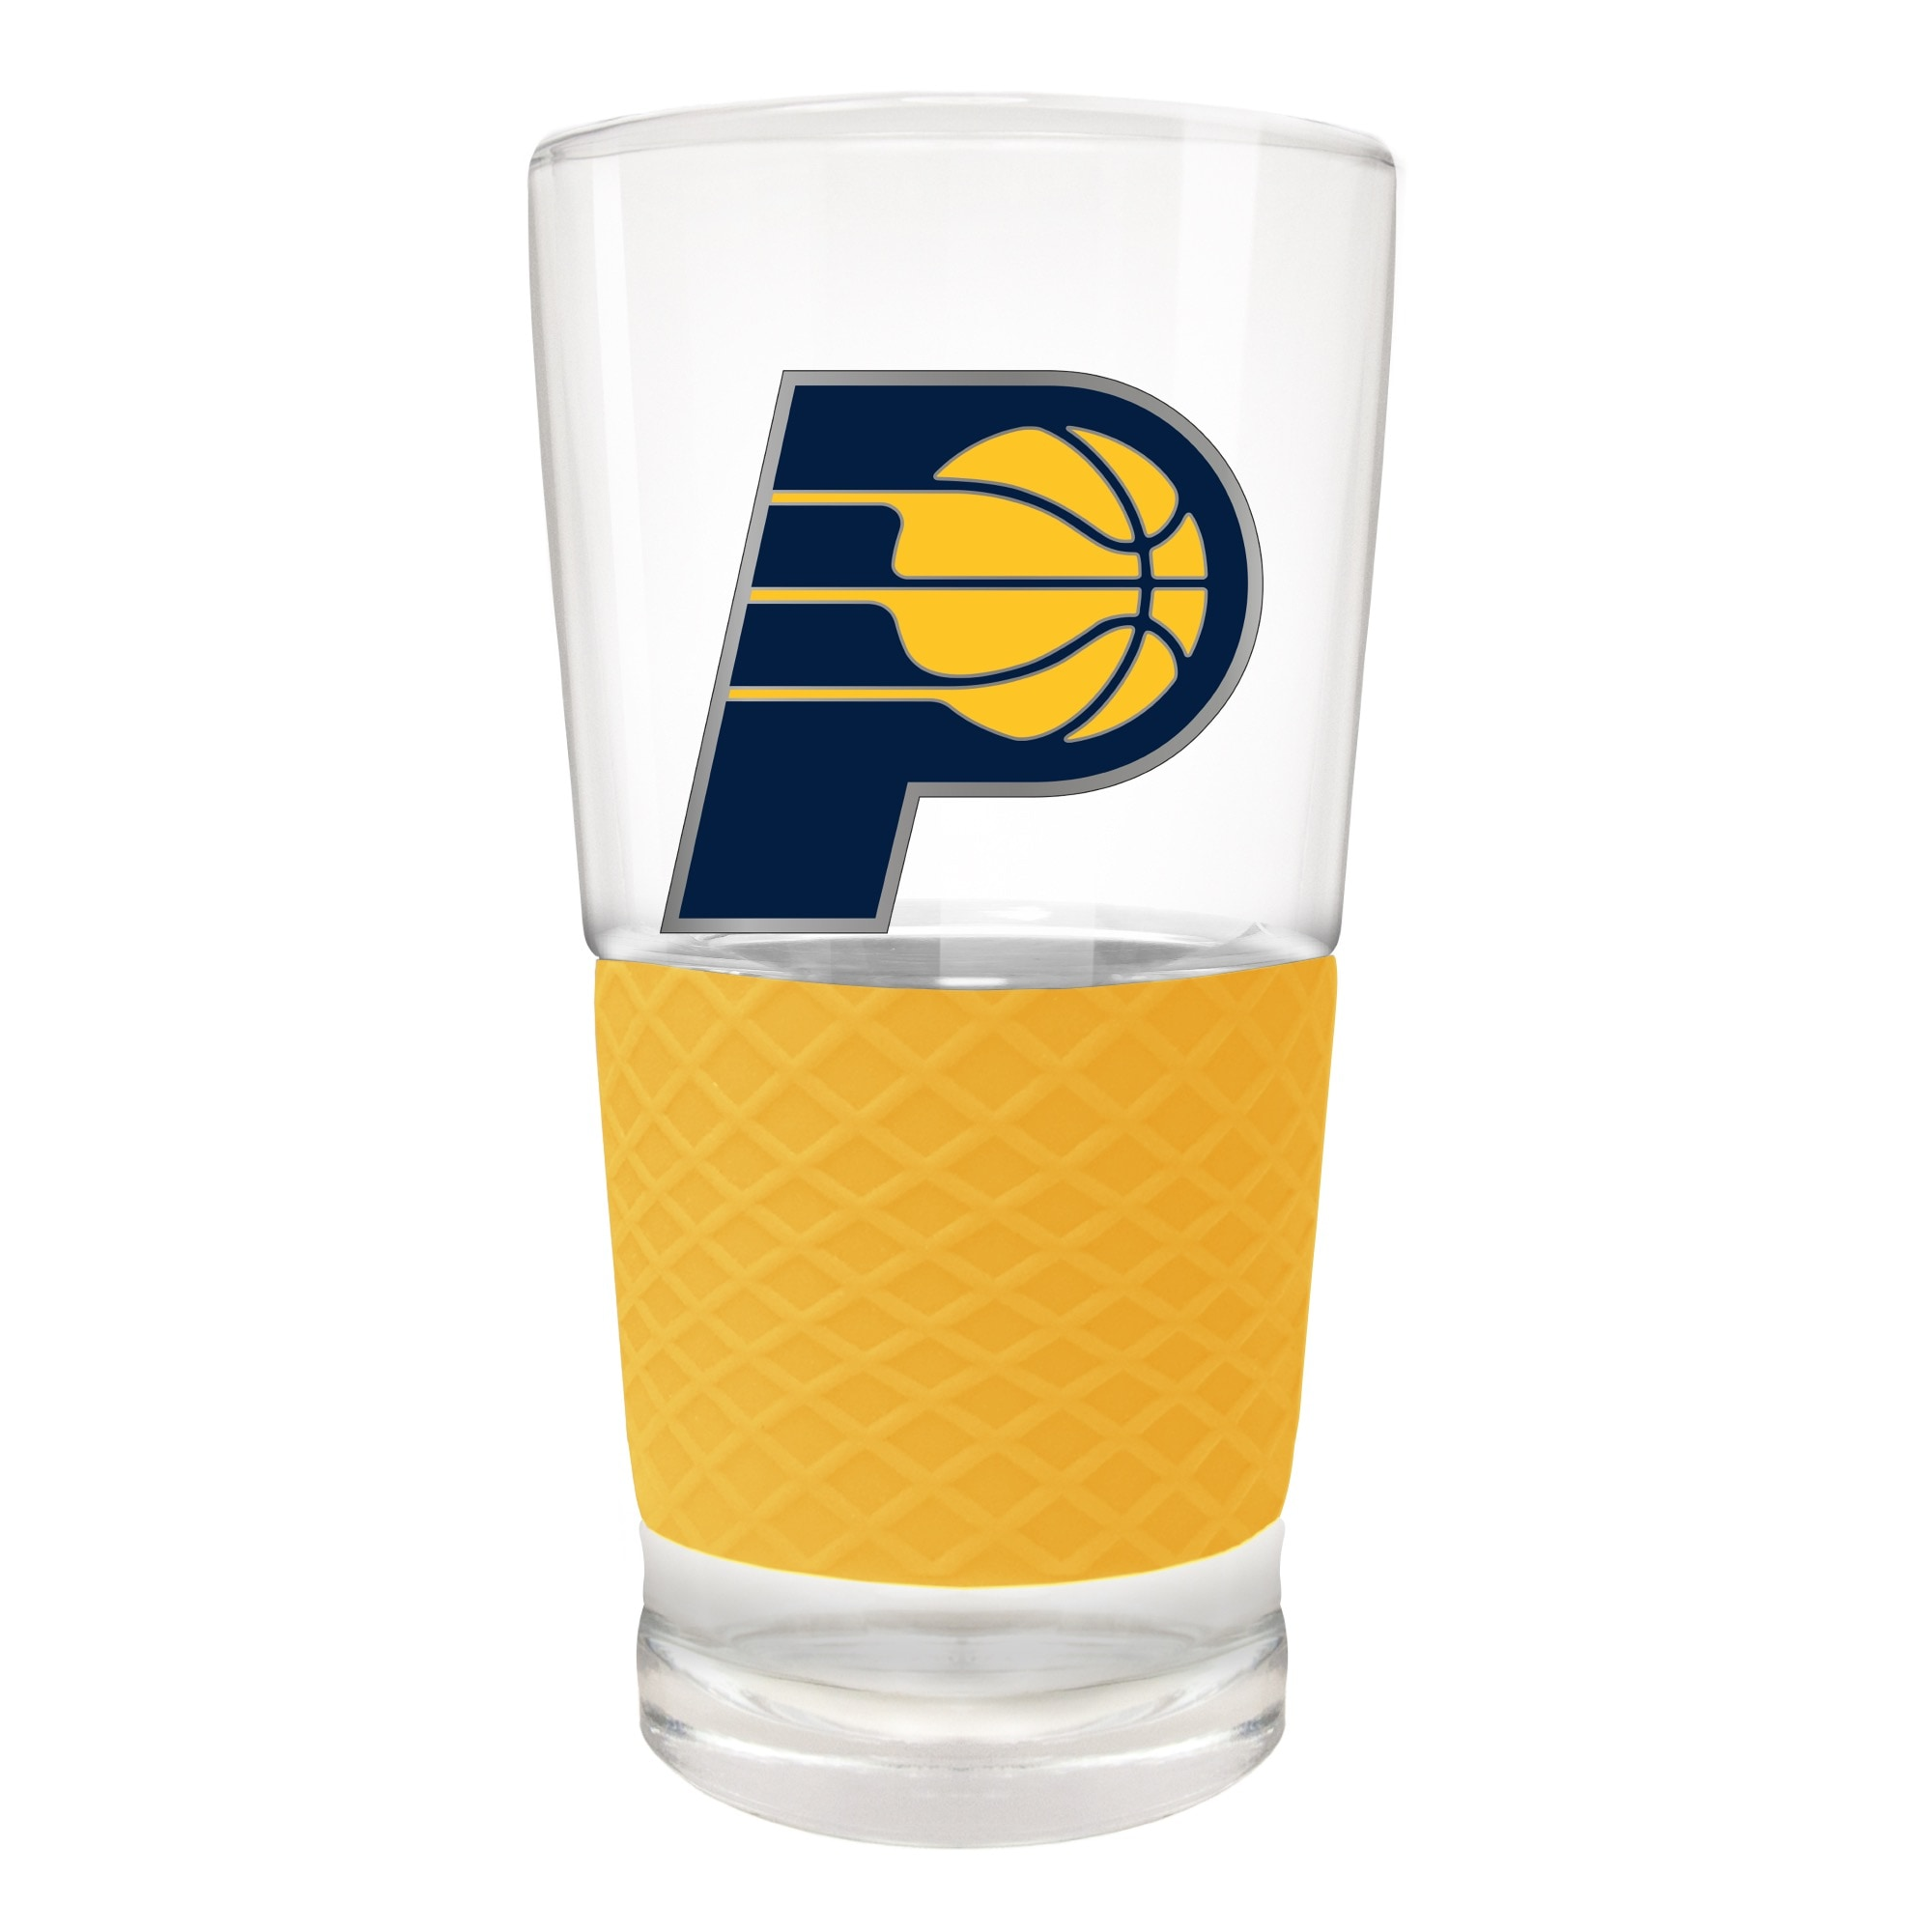 Indiana Pacers 22oz. Pilsner Glass with Silicone Grip